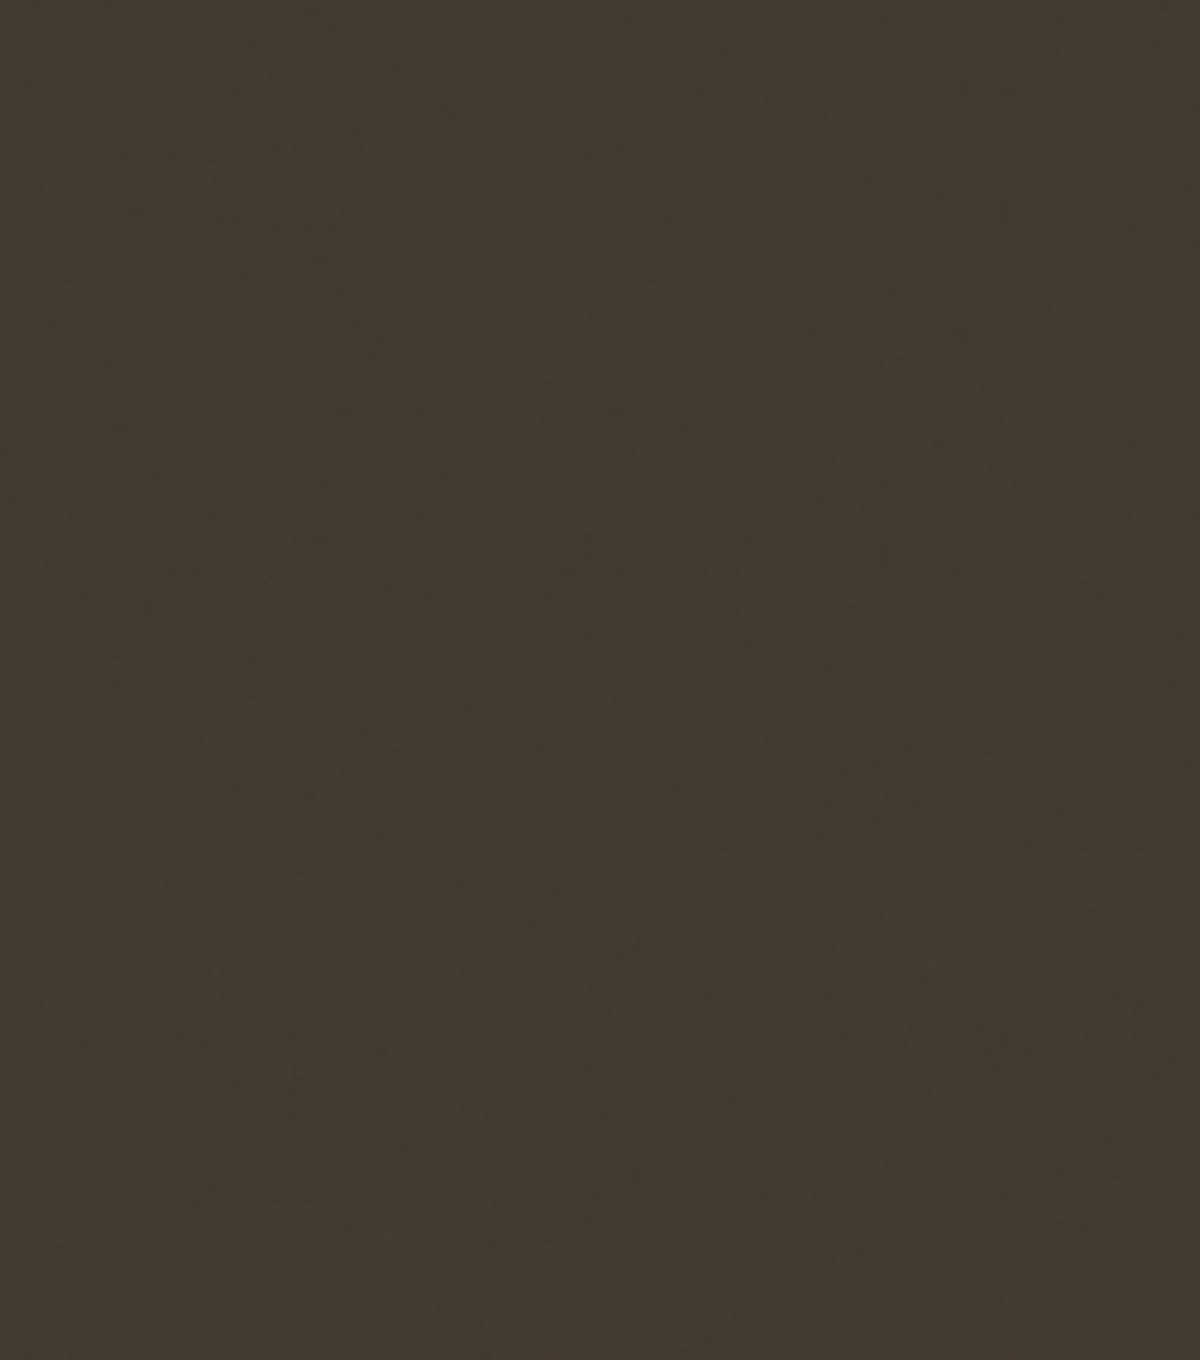 Delta Ceramcoat Acrylic Paint 2 oz, Dark Burnt Umber